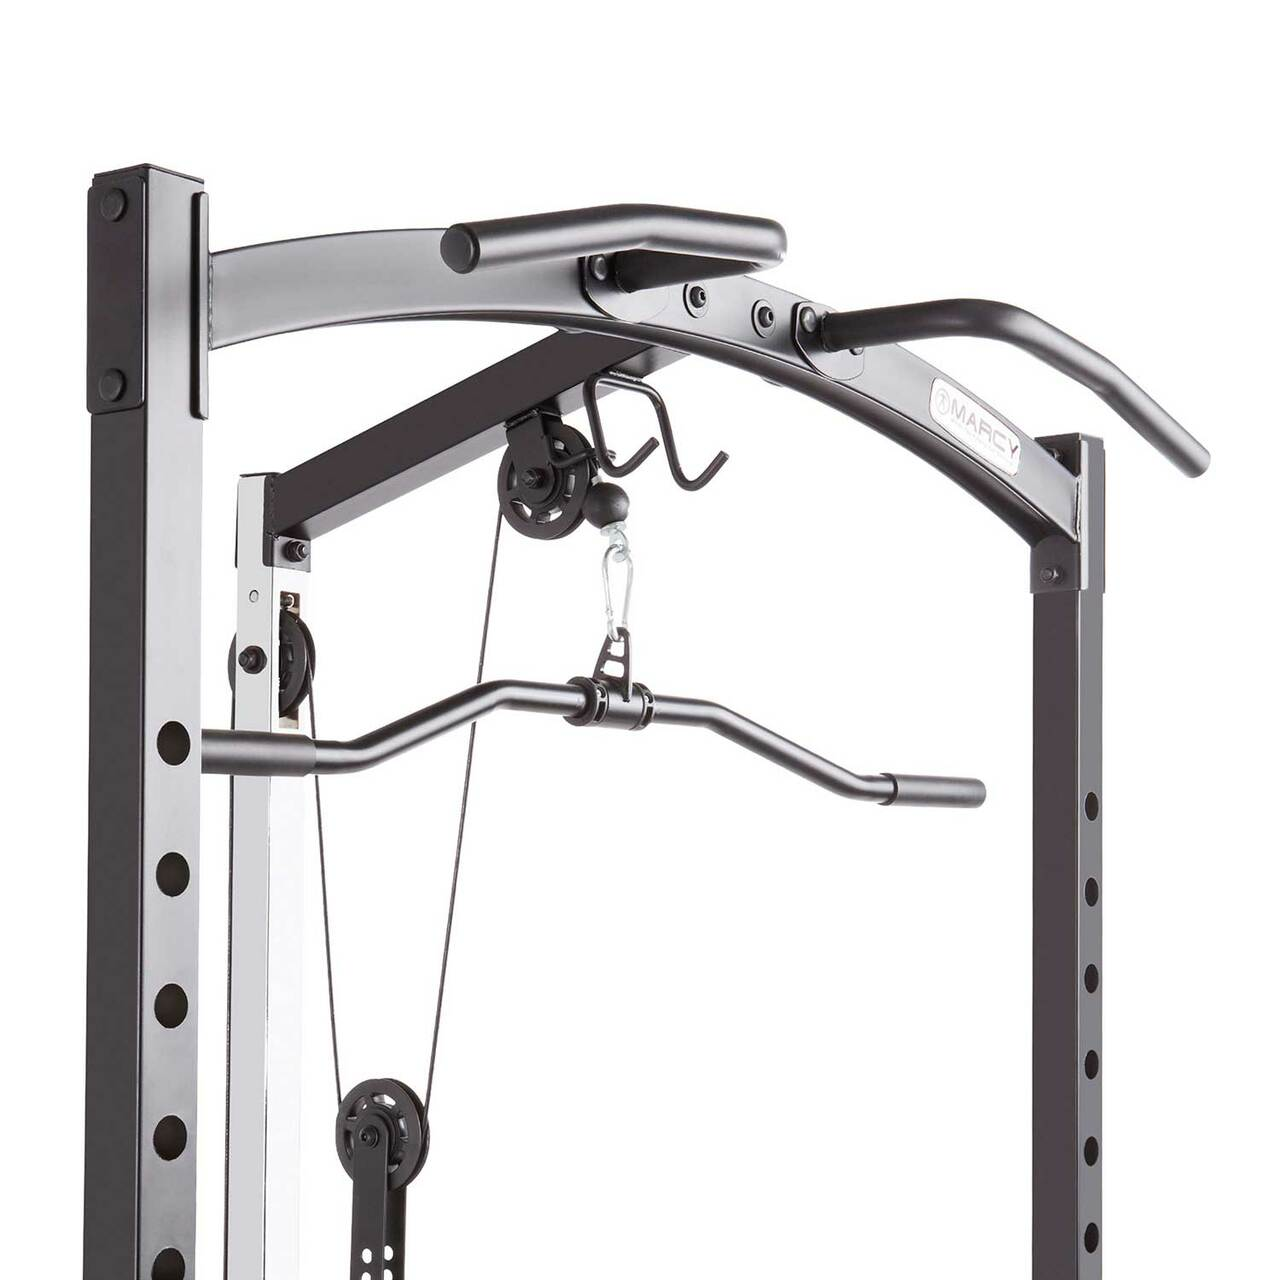 The Marcy Cage Home Gym MWM-7041 includes upper and lower pulleys for a full body workout